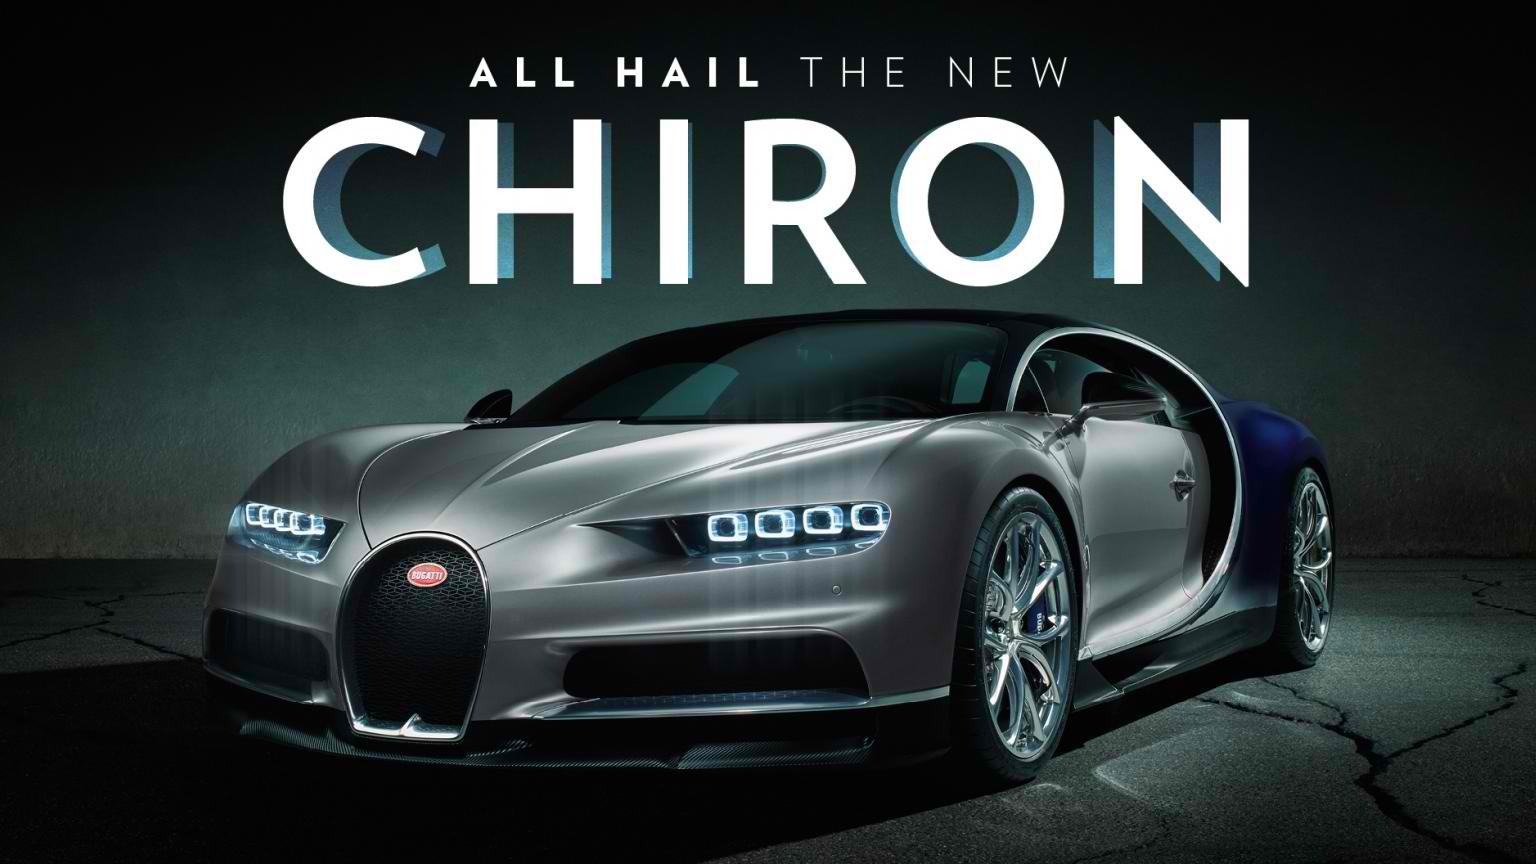 bugatti chiron usurps the veyron as the world s fastest car suv news and analysis. Black Bedroom Furniture Sets. Home Design Ideas